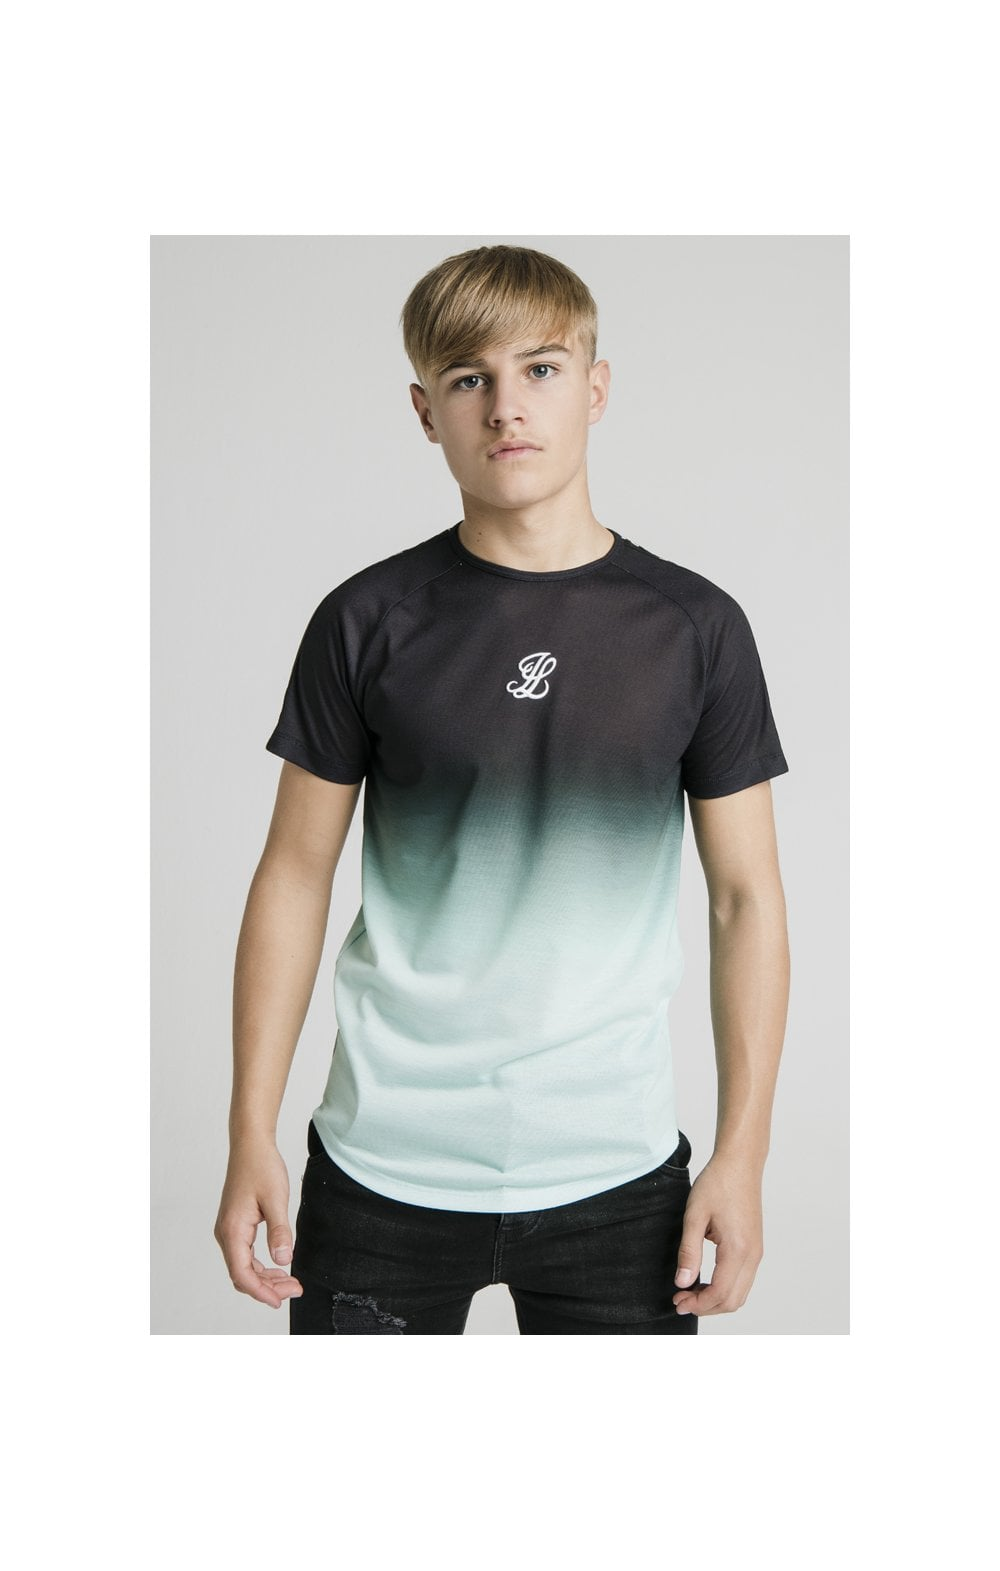 Load image into Gallery viewer, Illusive London Tape Fade Logo Tee - Black & Mint